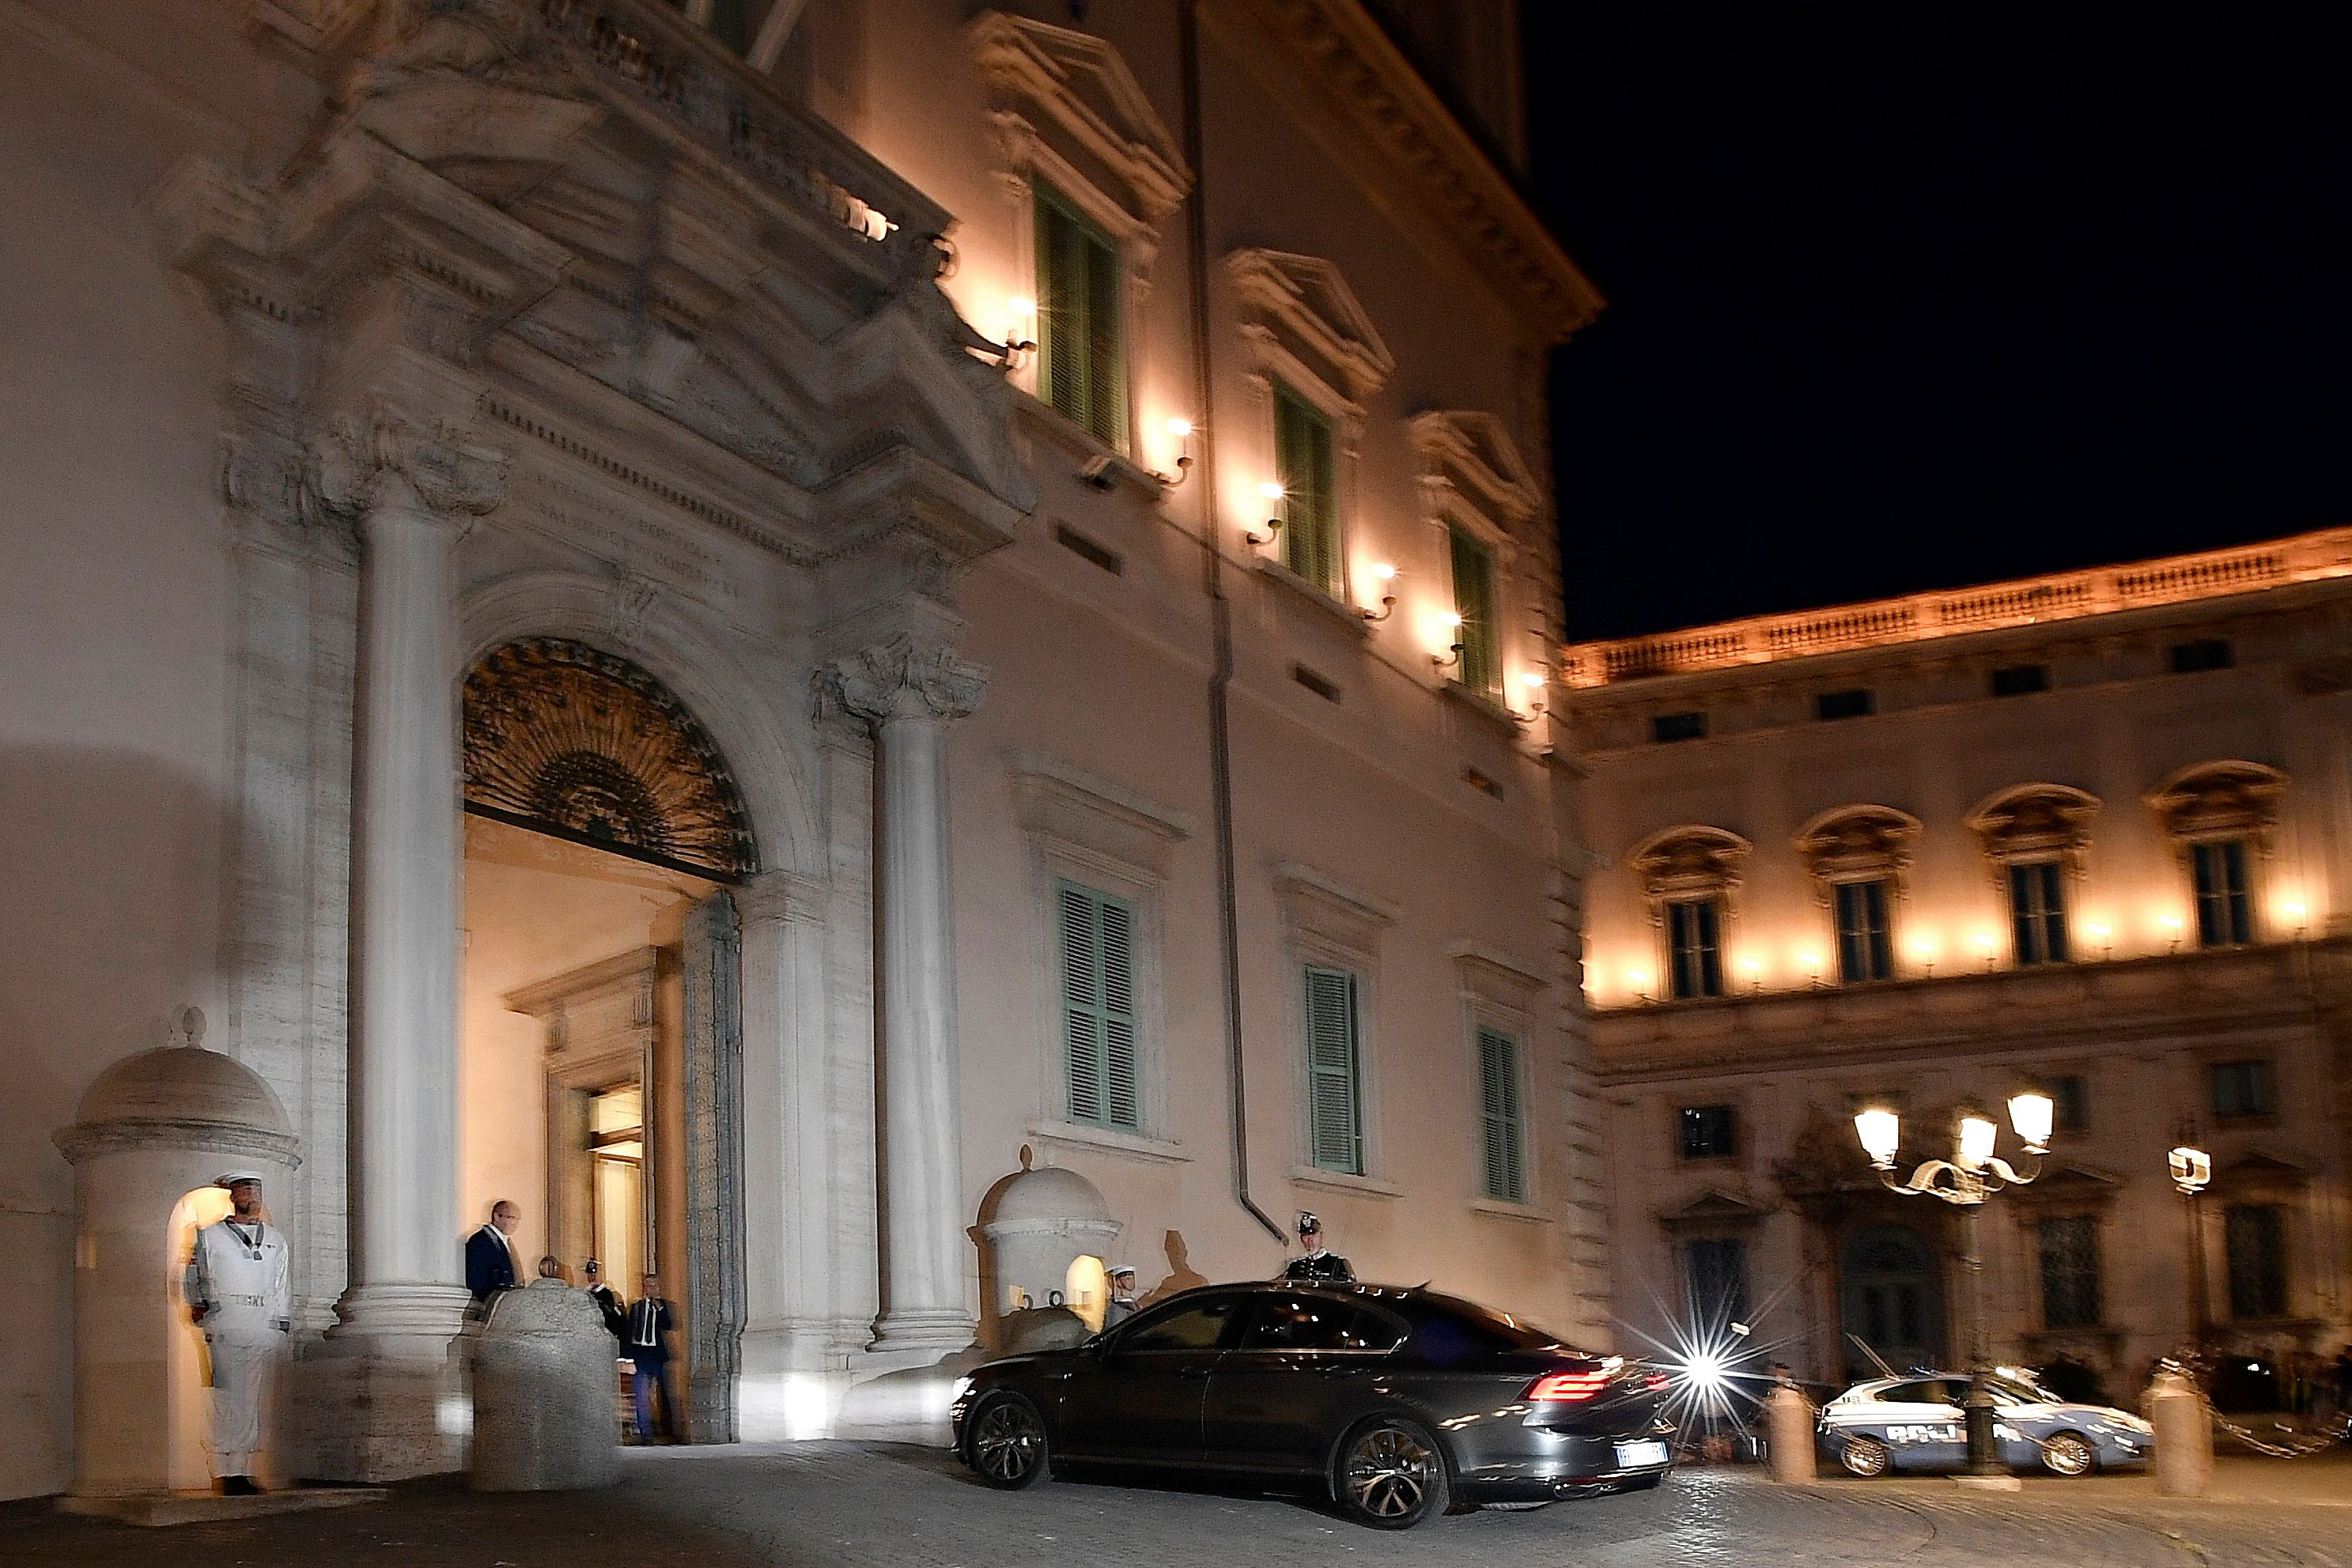 Italian Prime Minister Giuseppe Conte arrives in his car at the Palazzo Quirinale in Rome as the country faces a political crisis on Aug. 20, 2019.